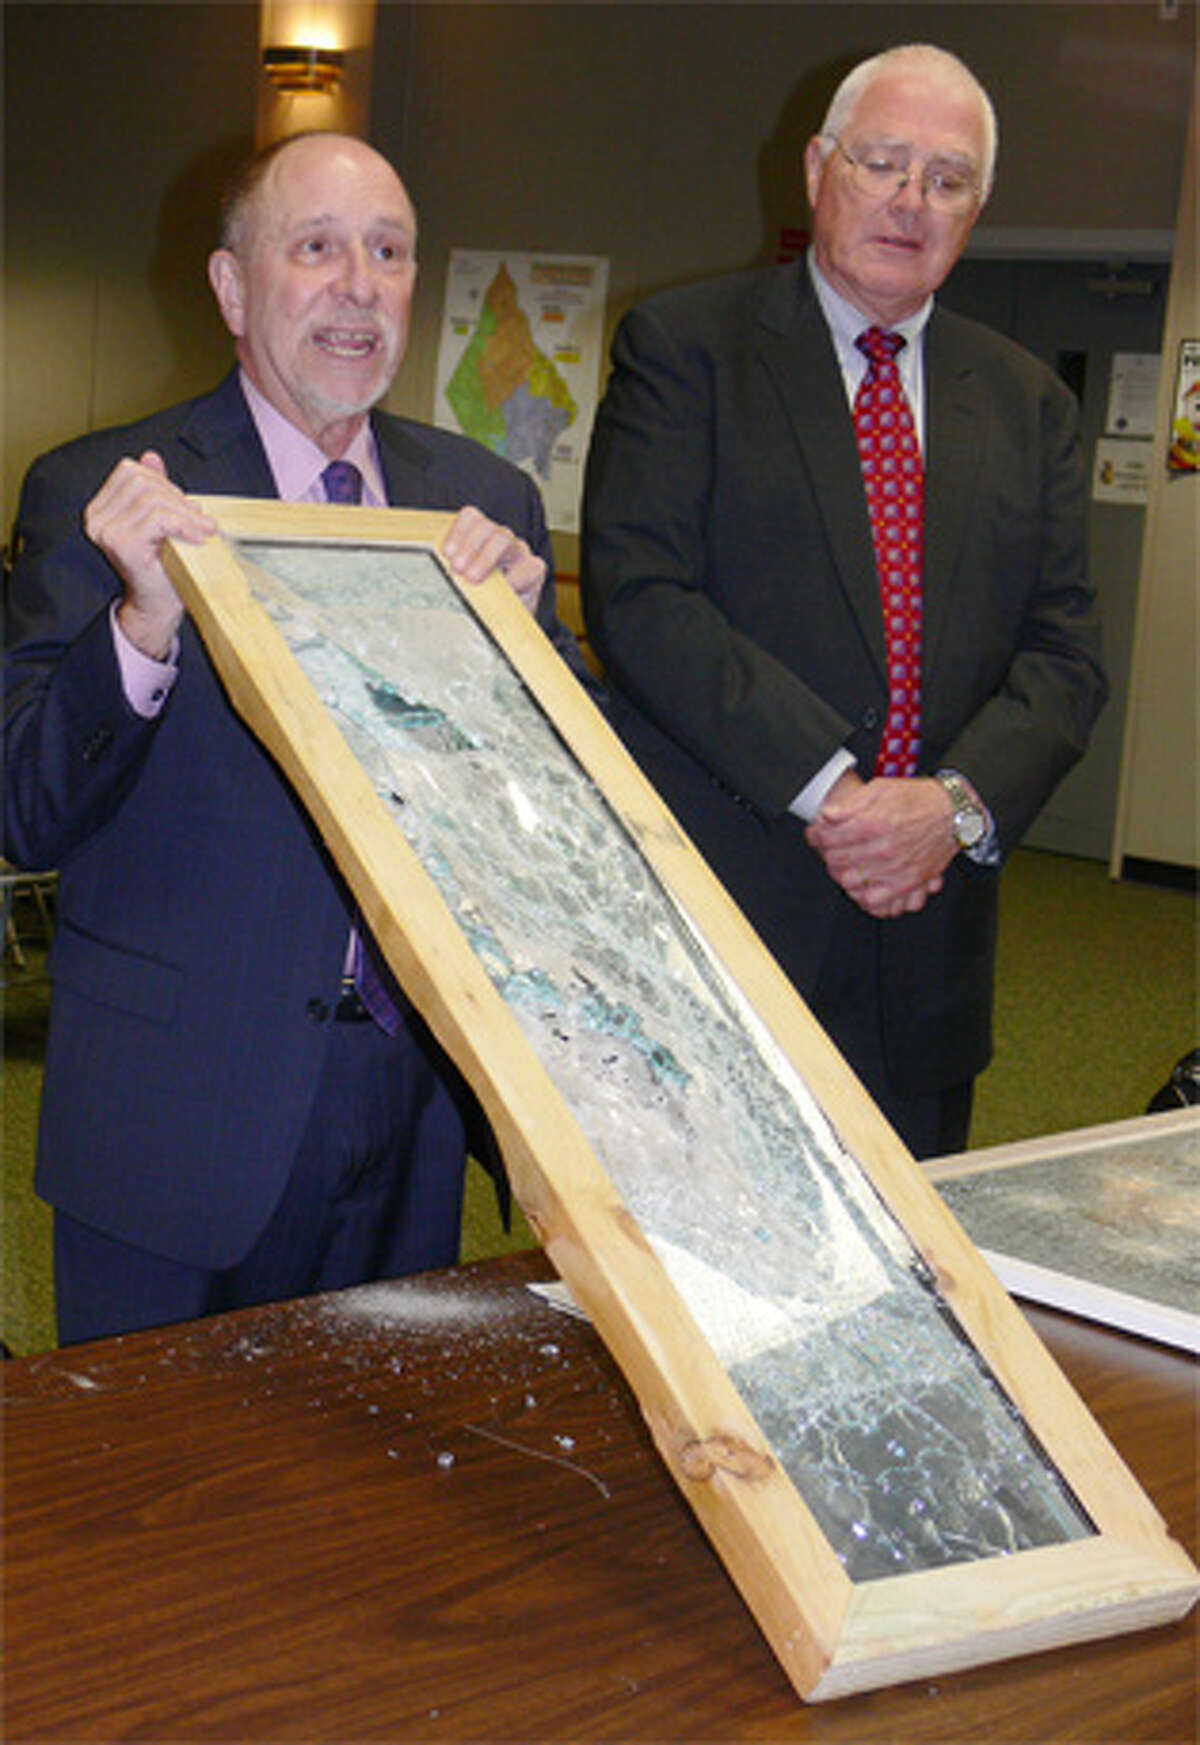 School Supt. Freeman Burr, left, shows a security film-coated window that withstood gun shots and other damage to the Board of Aldermen, with school Finance Director Al Cameron at his side.